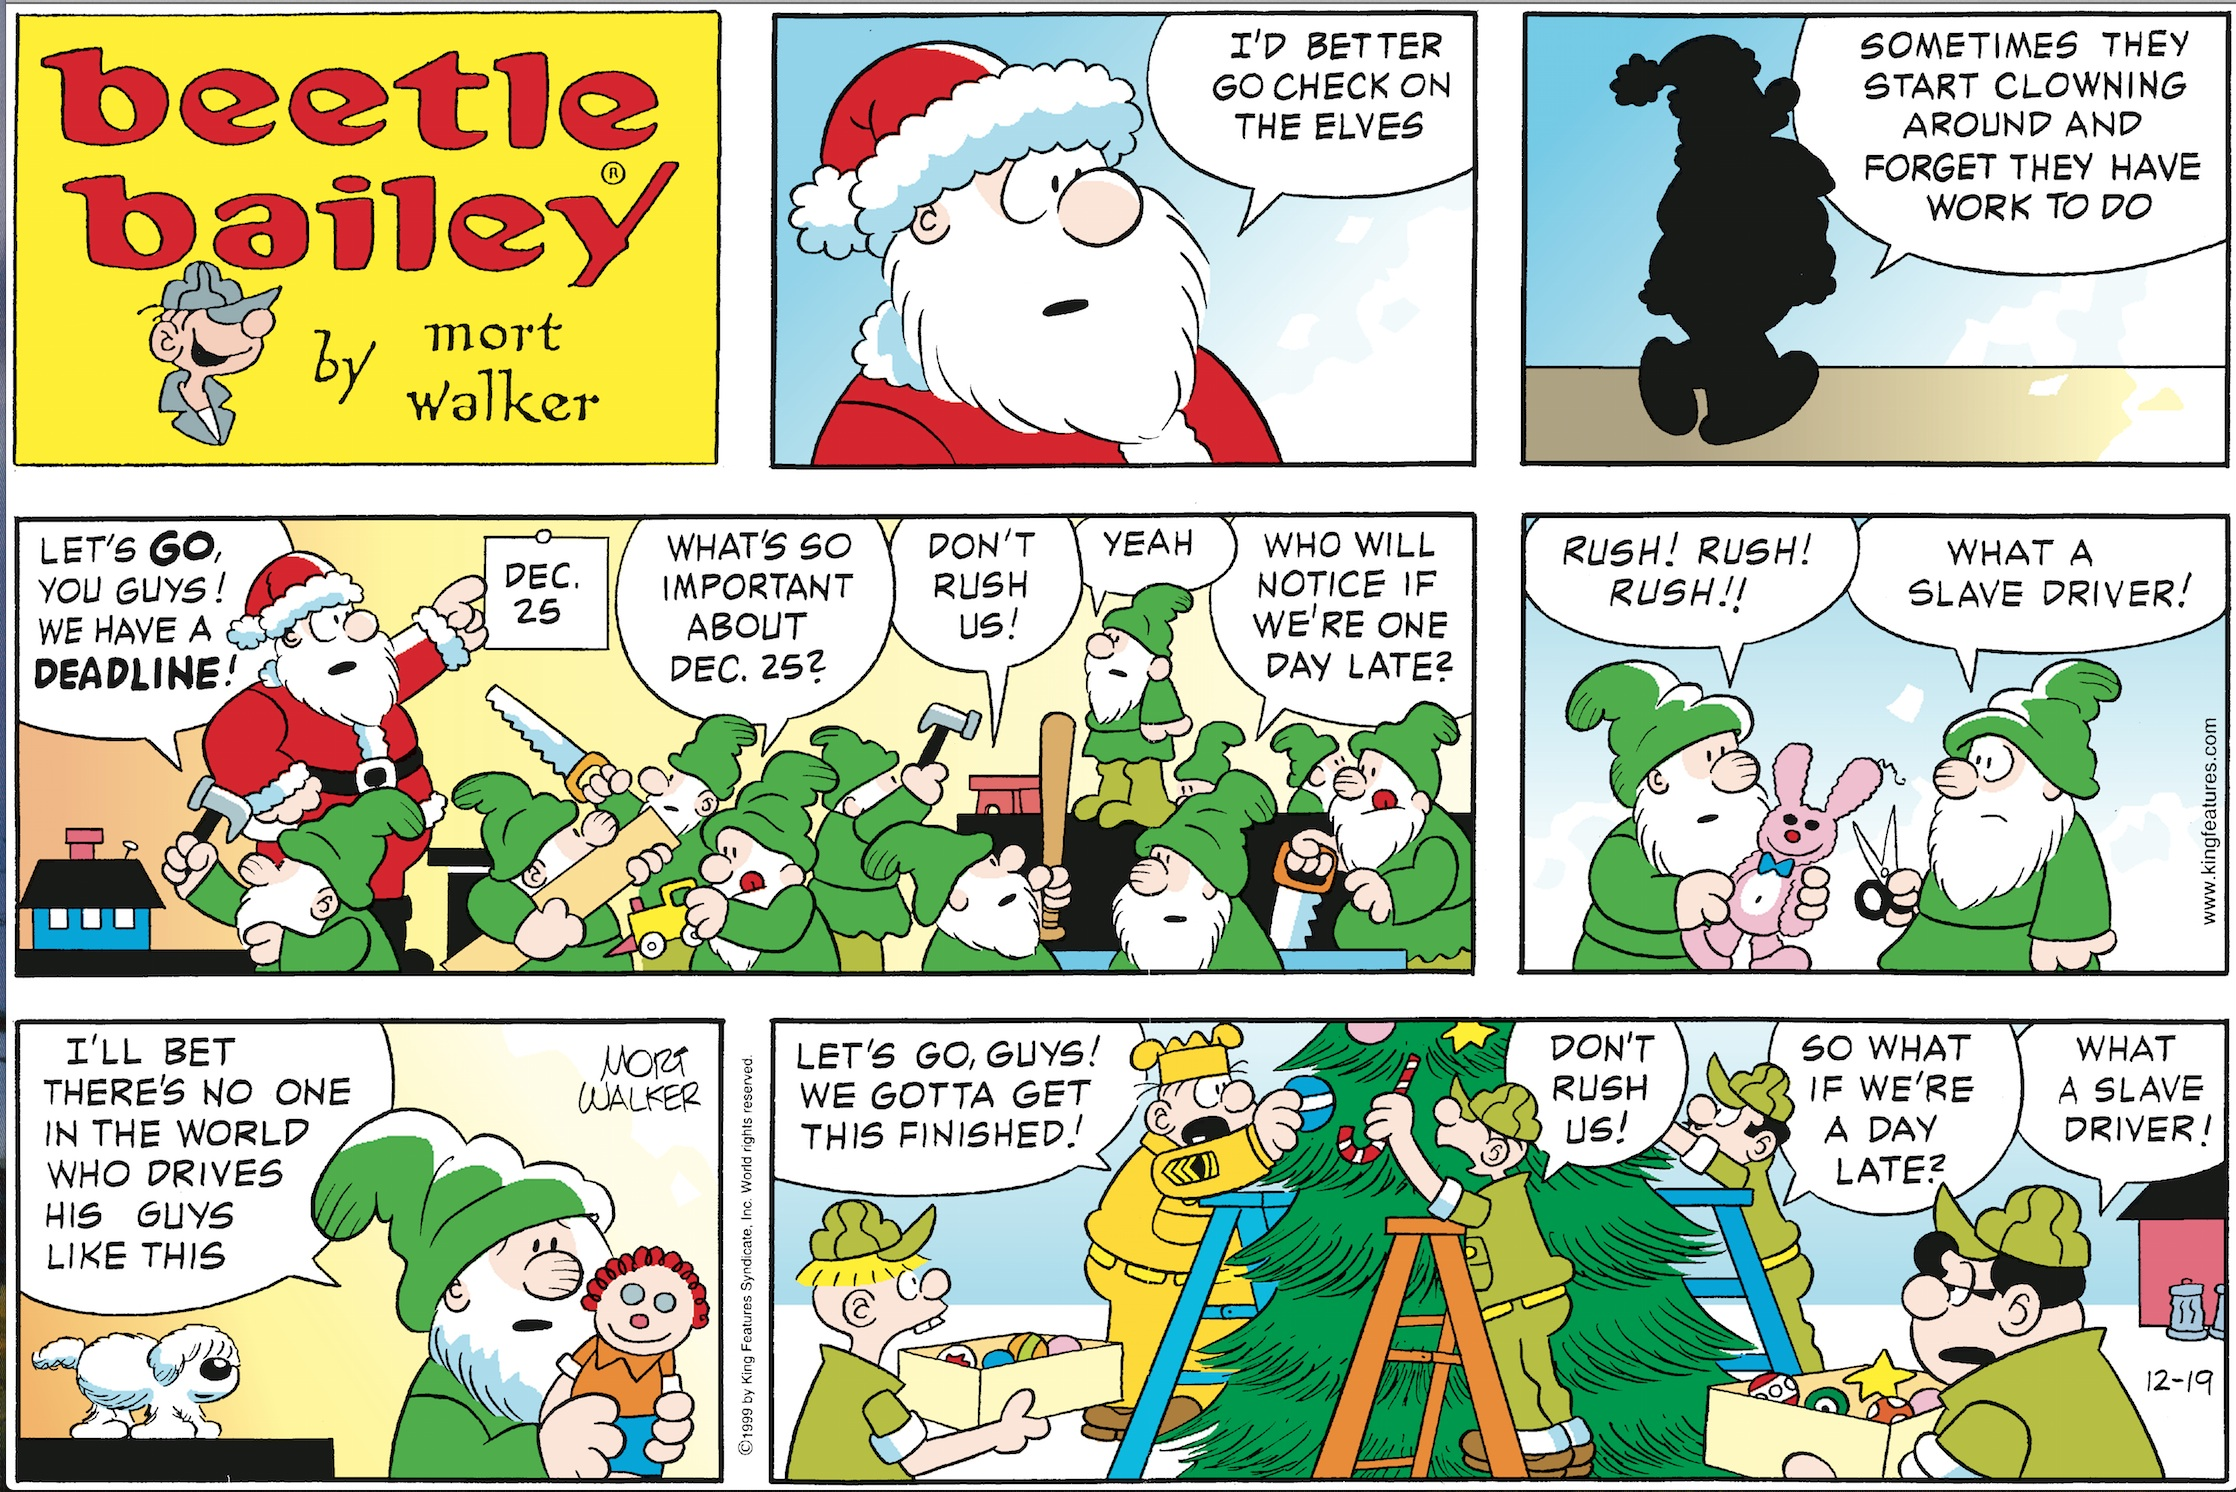 Beetle Bailey Sunday page, December 19, 1999.